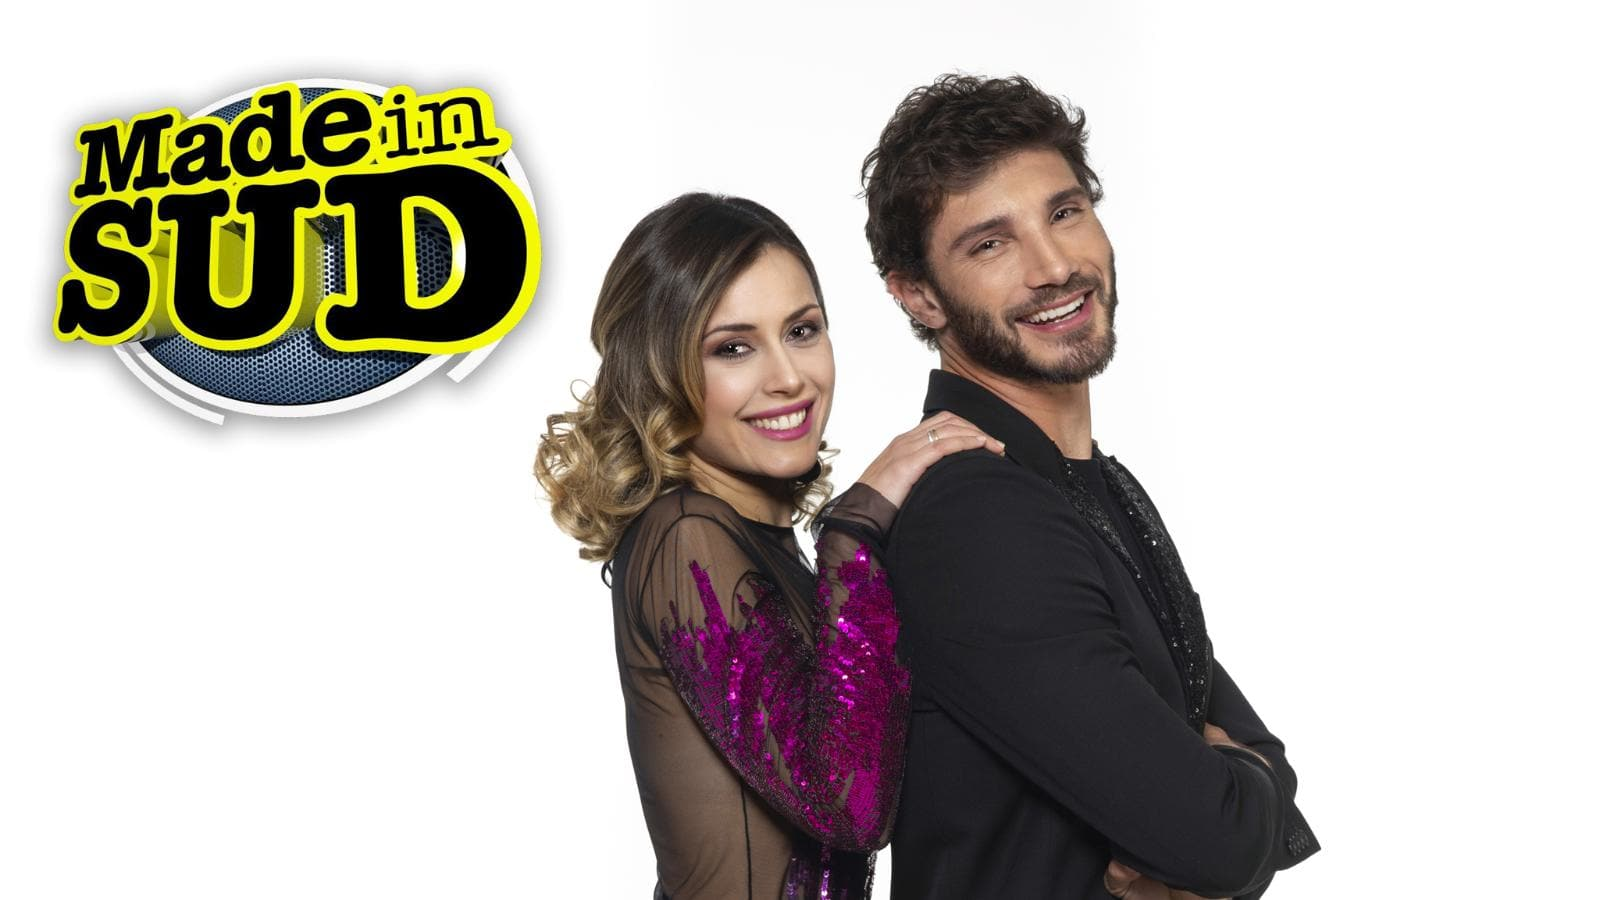 Stasera in tv Made in Sud con Fatima Trotta e Stefano De Martino